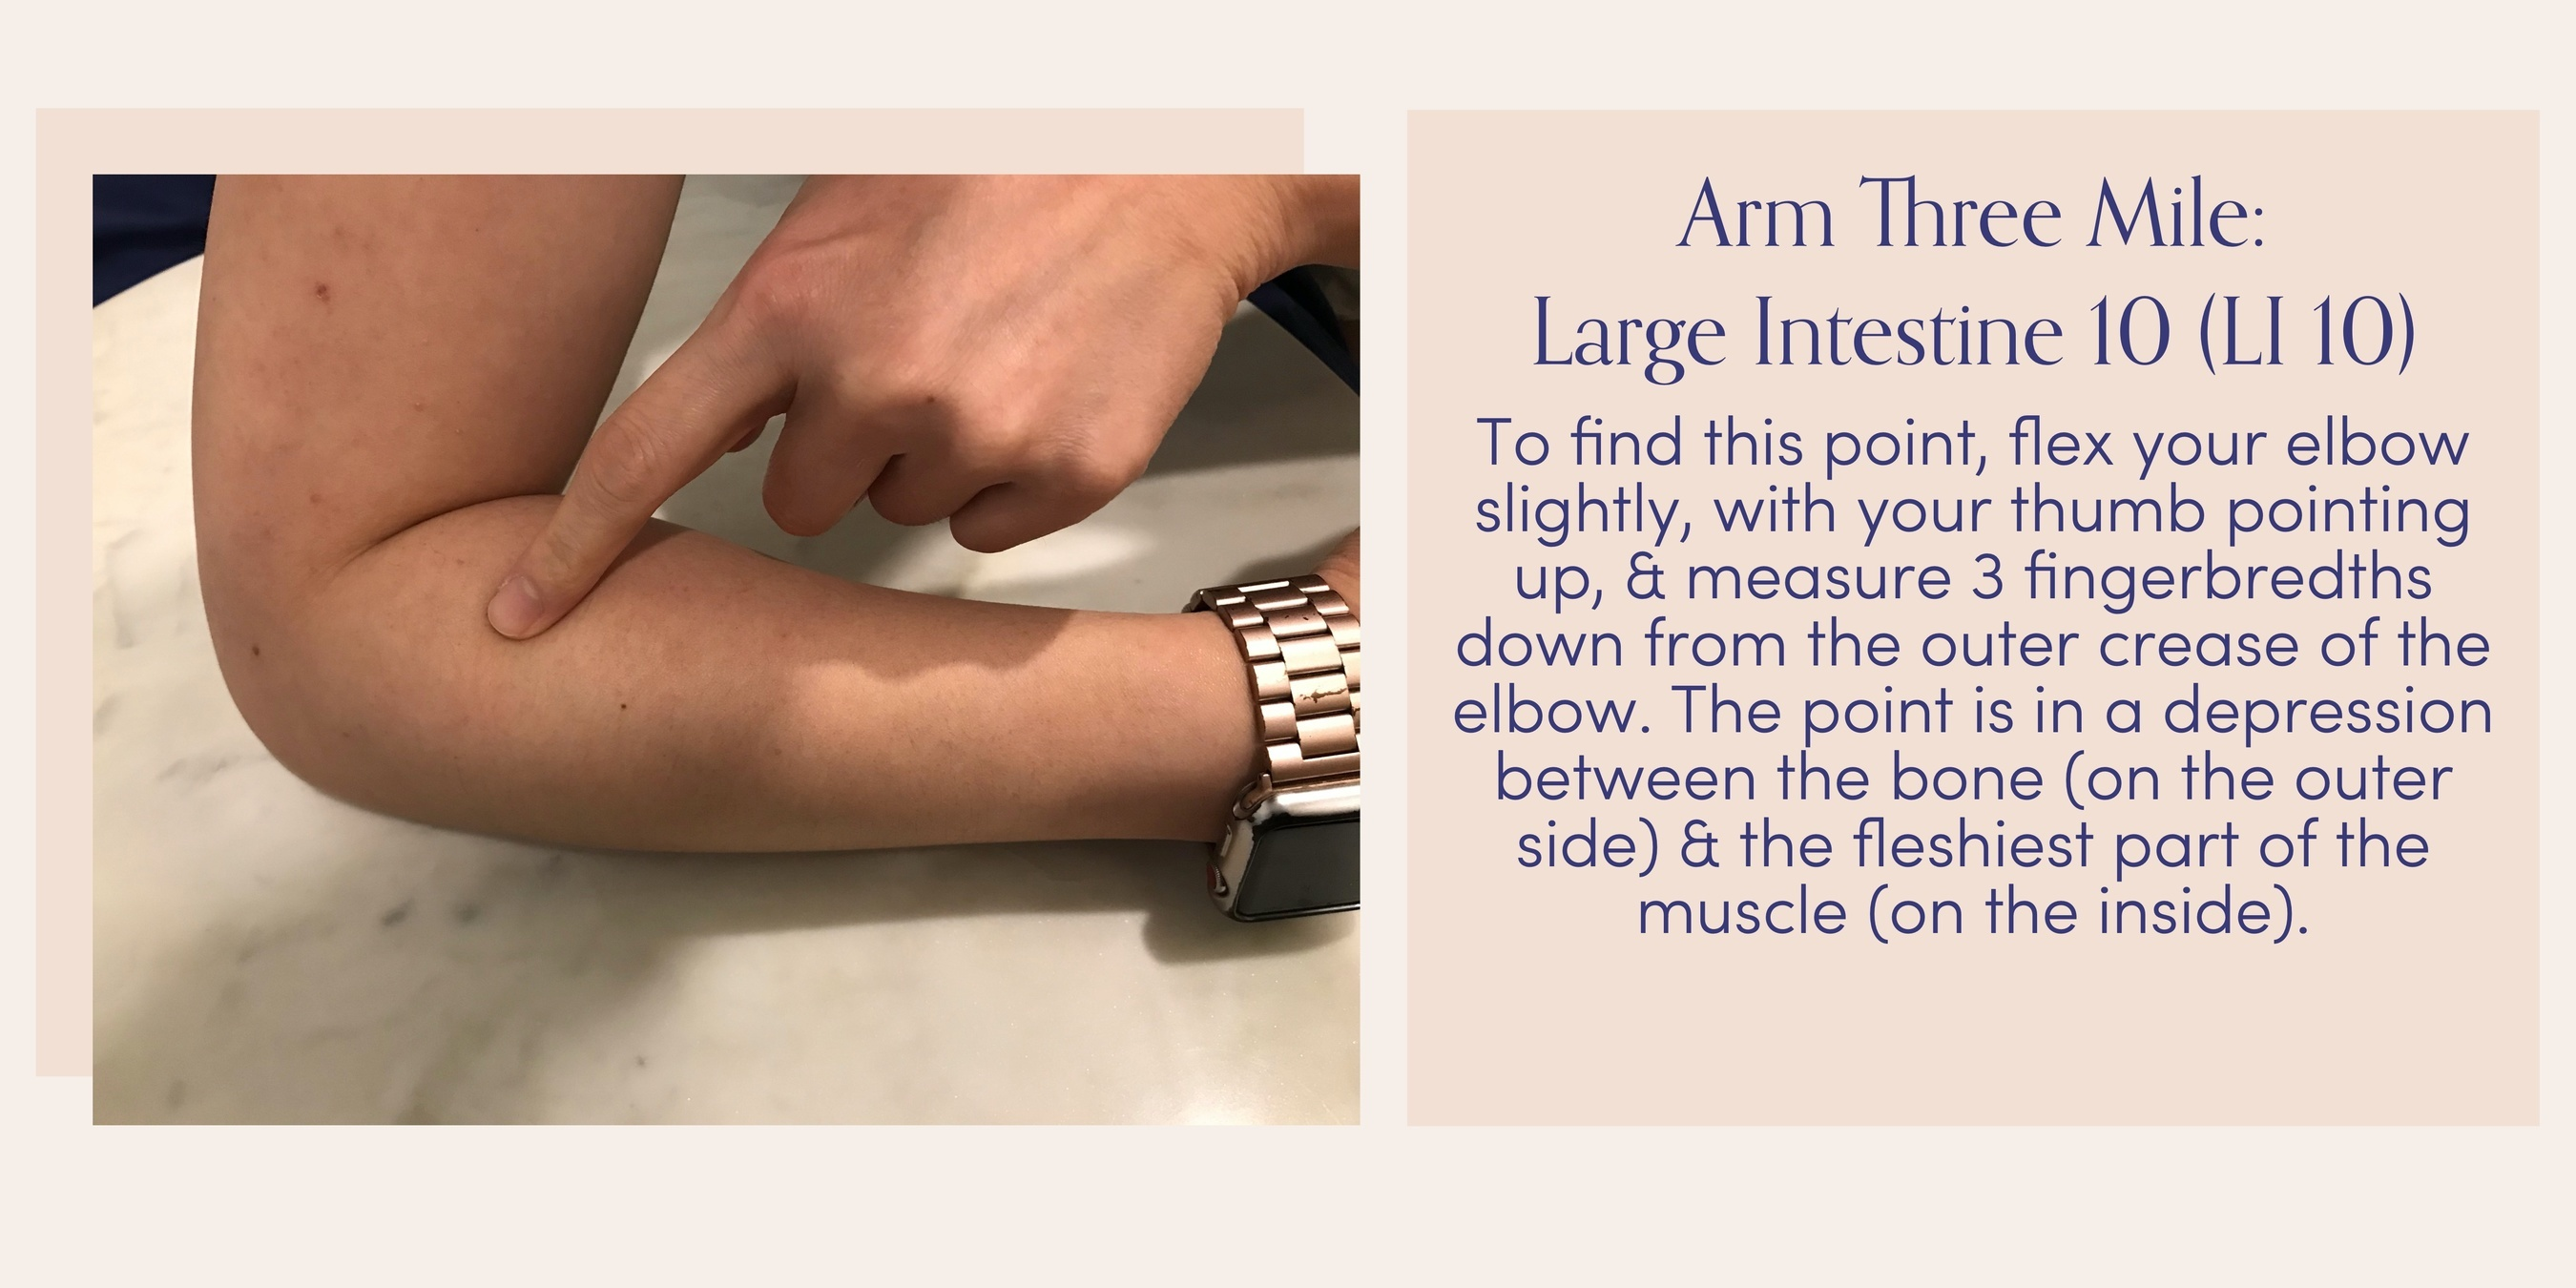 Acupressure point Large Intestine 10: To find this point, flex your elbow slightly, with your thumb pointing up, & measure 3 fingerbredths down from the outer crease of the elbow. The point is in a depression between the bone (on the outer side) & the fleshiest part of the muscle (on the inside).